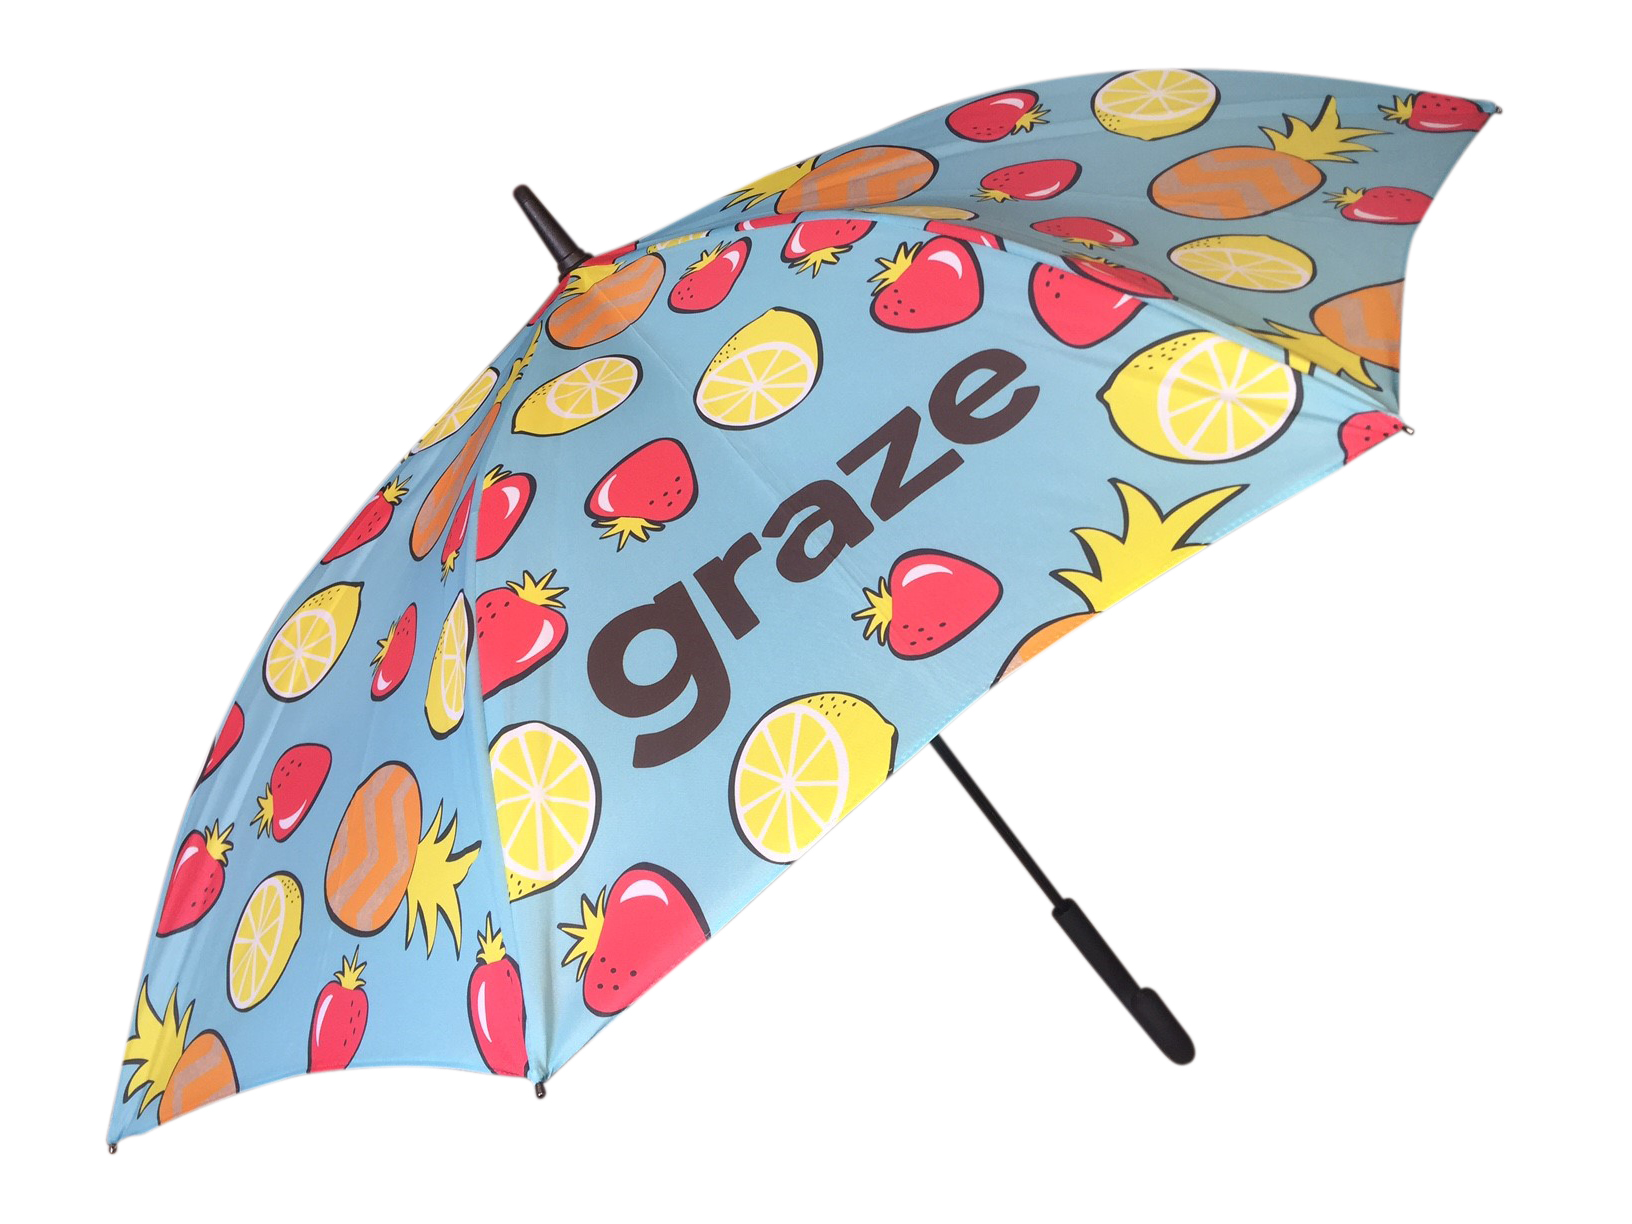 brightly printed umbrella with fruit graphics